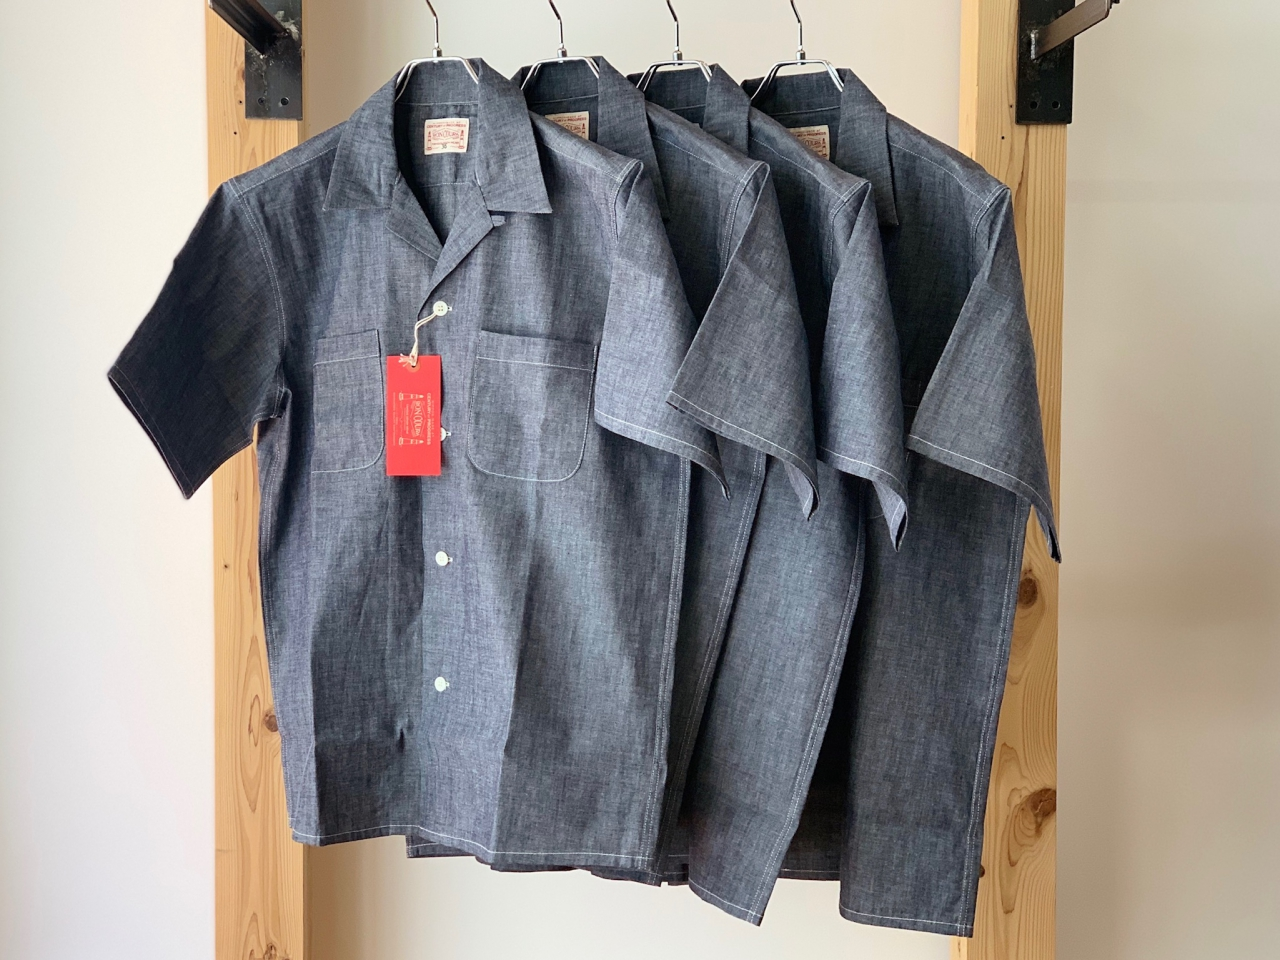 BONCOURA - ONE-UP S/S SHIRTS -